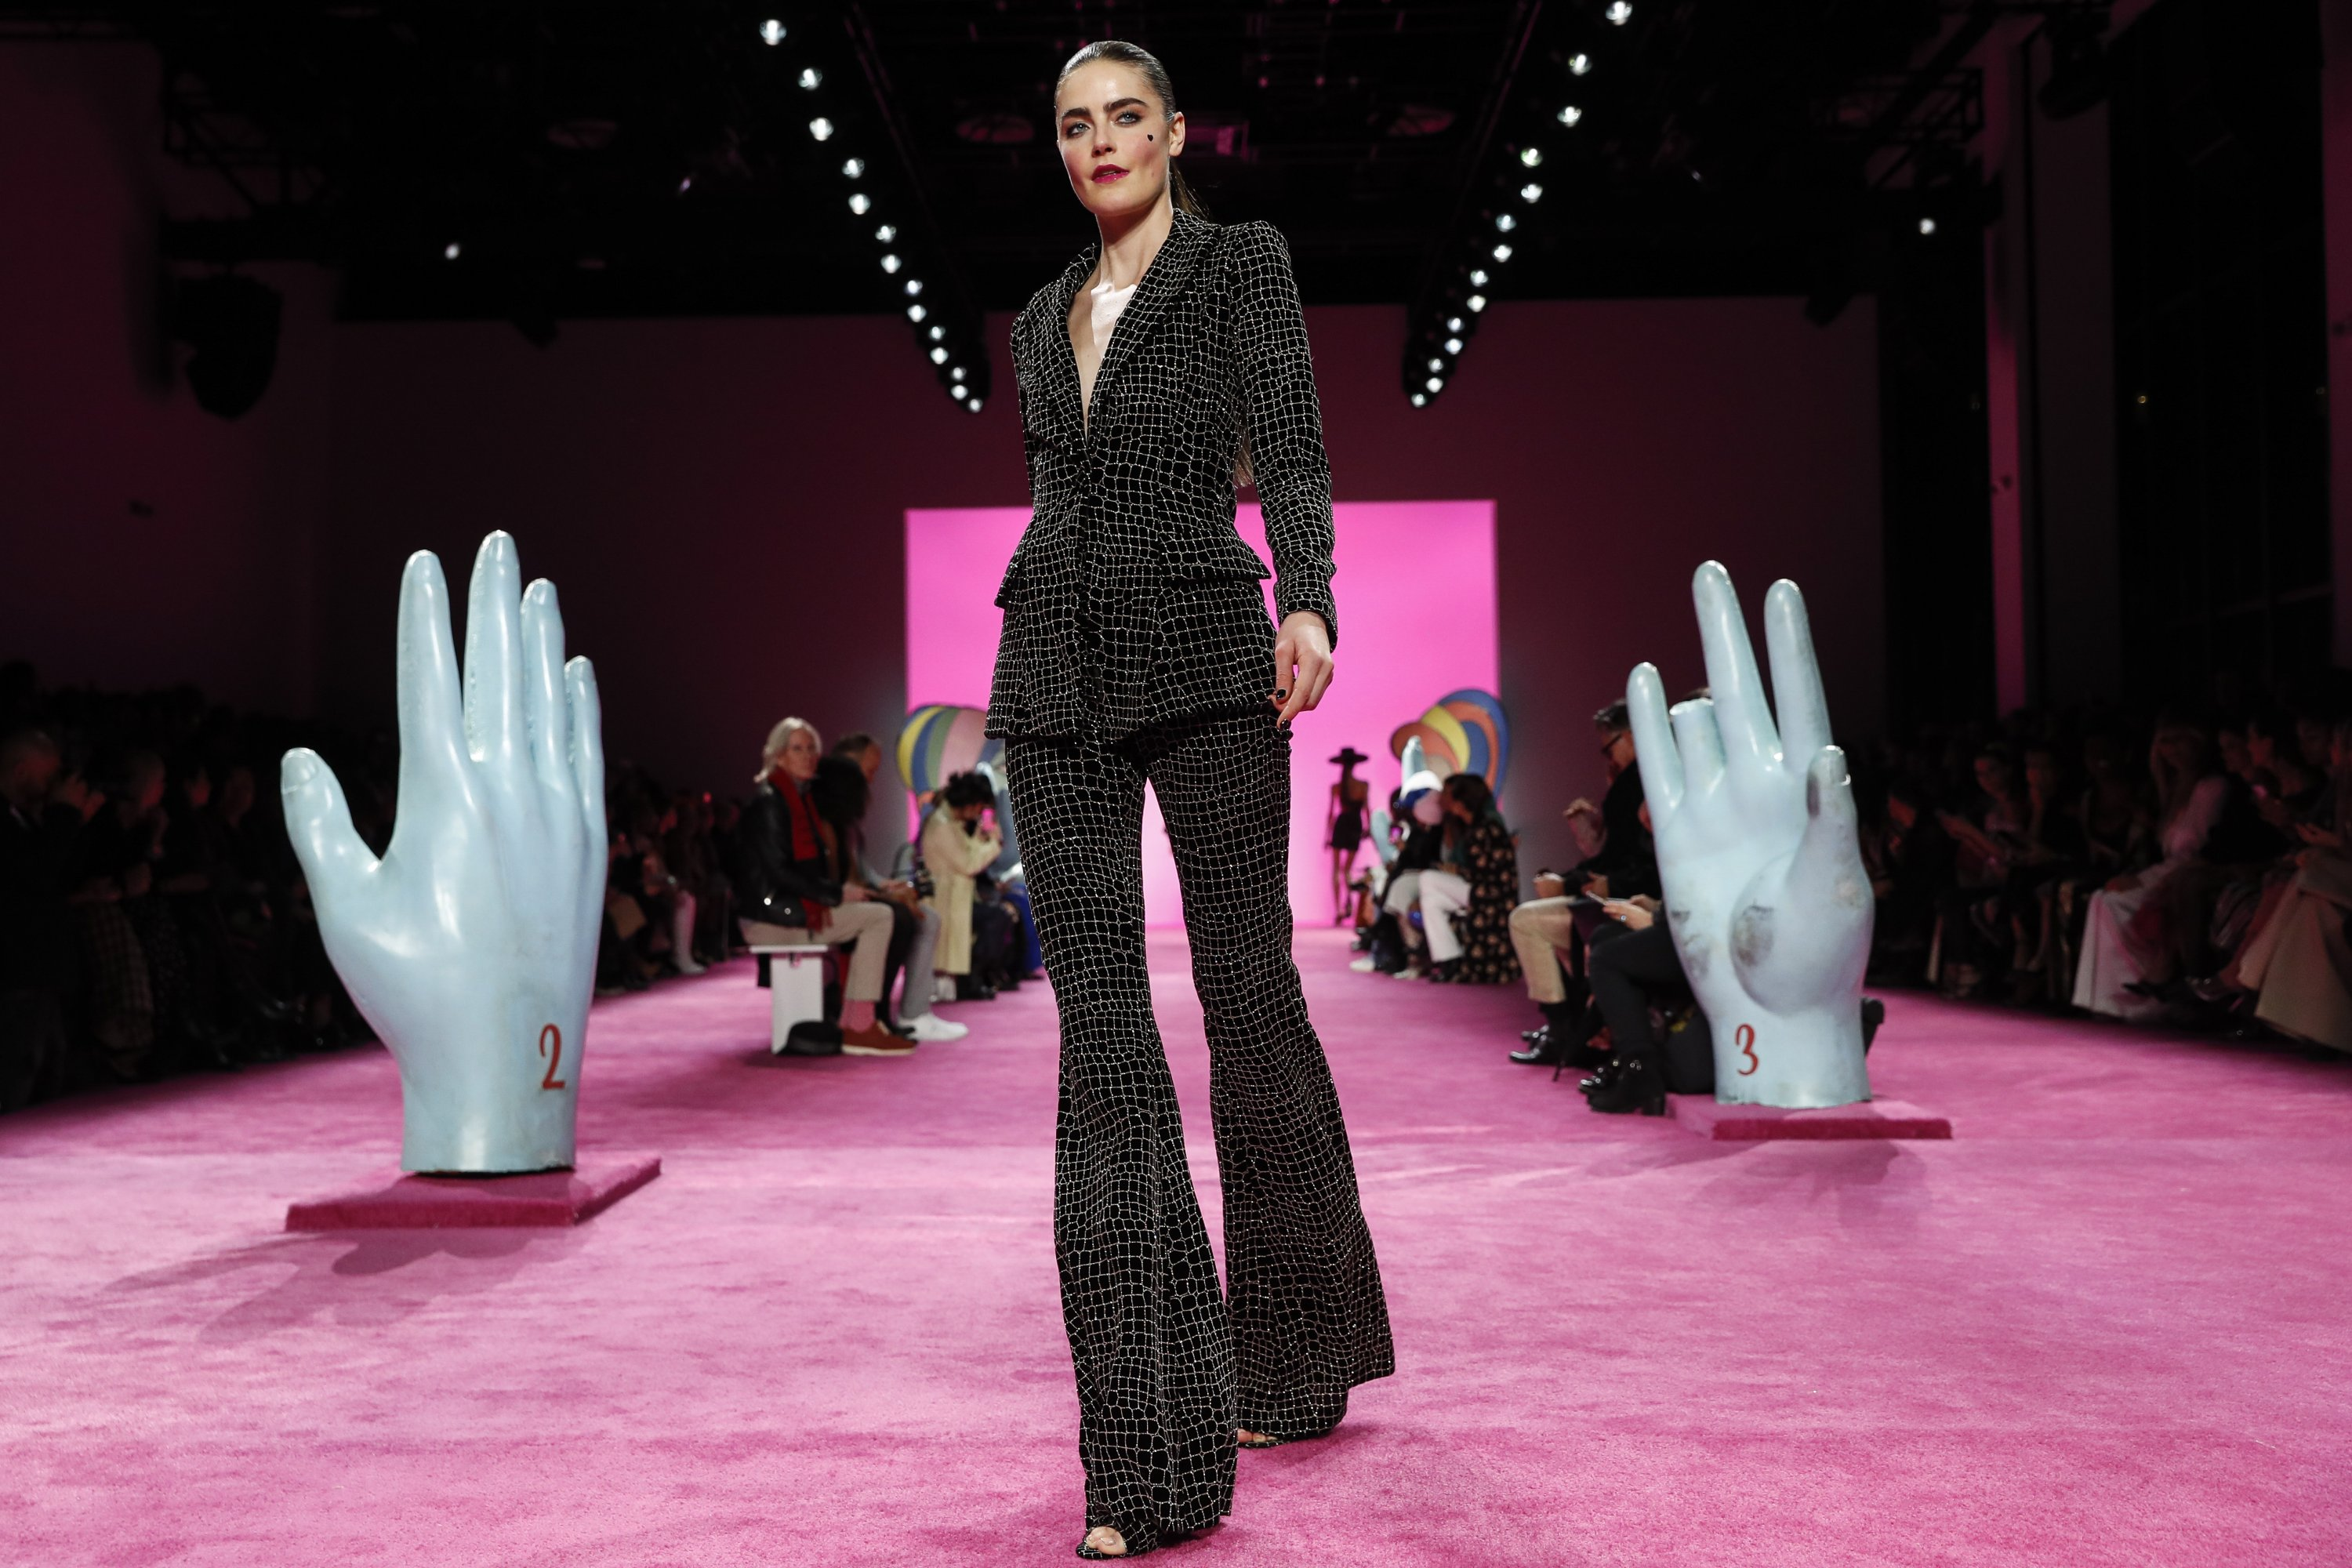 The Christian Siriano collection is modeled during Fashion Week in New York on Feb. 6, 2020. (AP Photo)